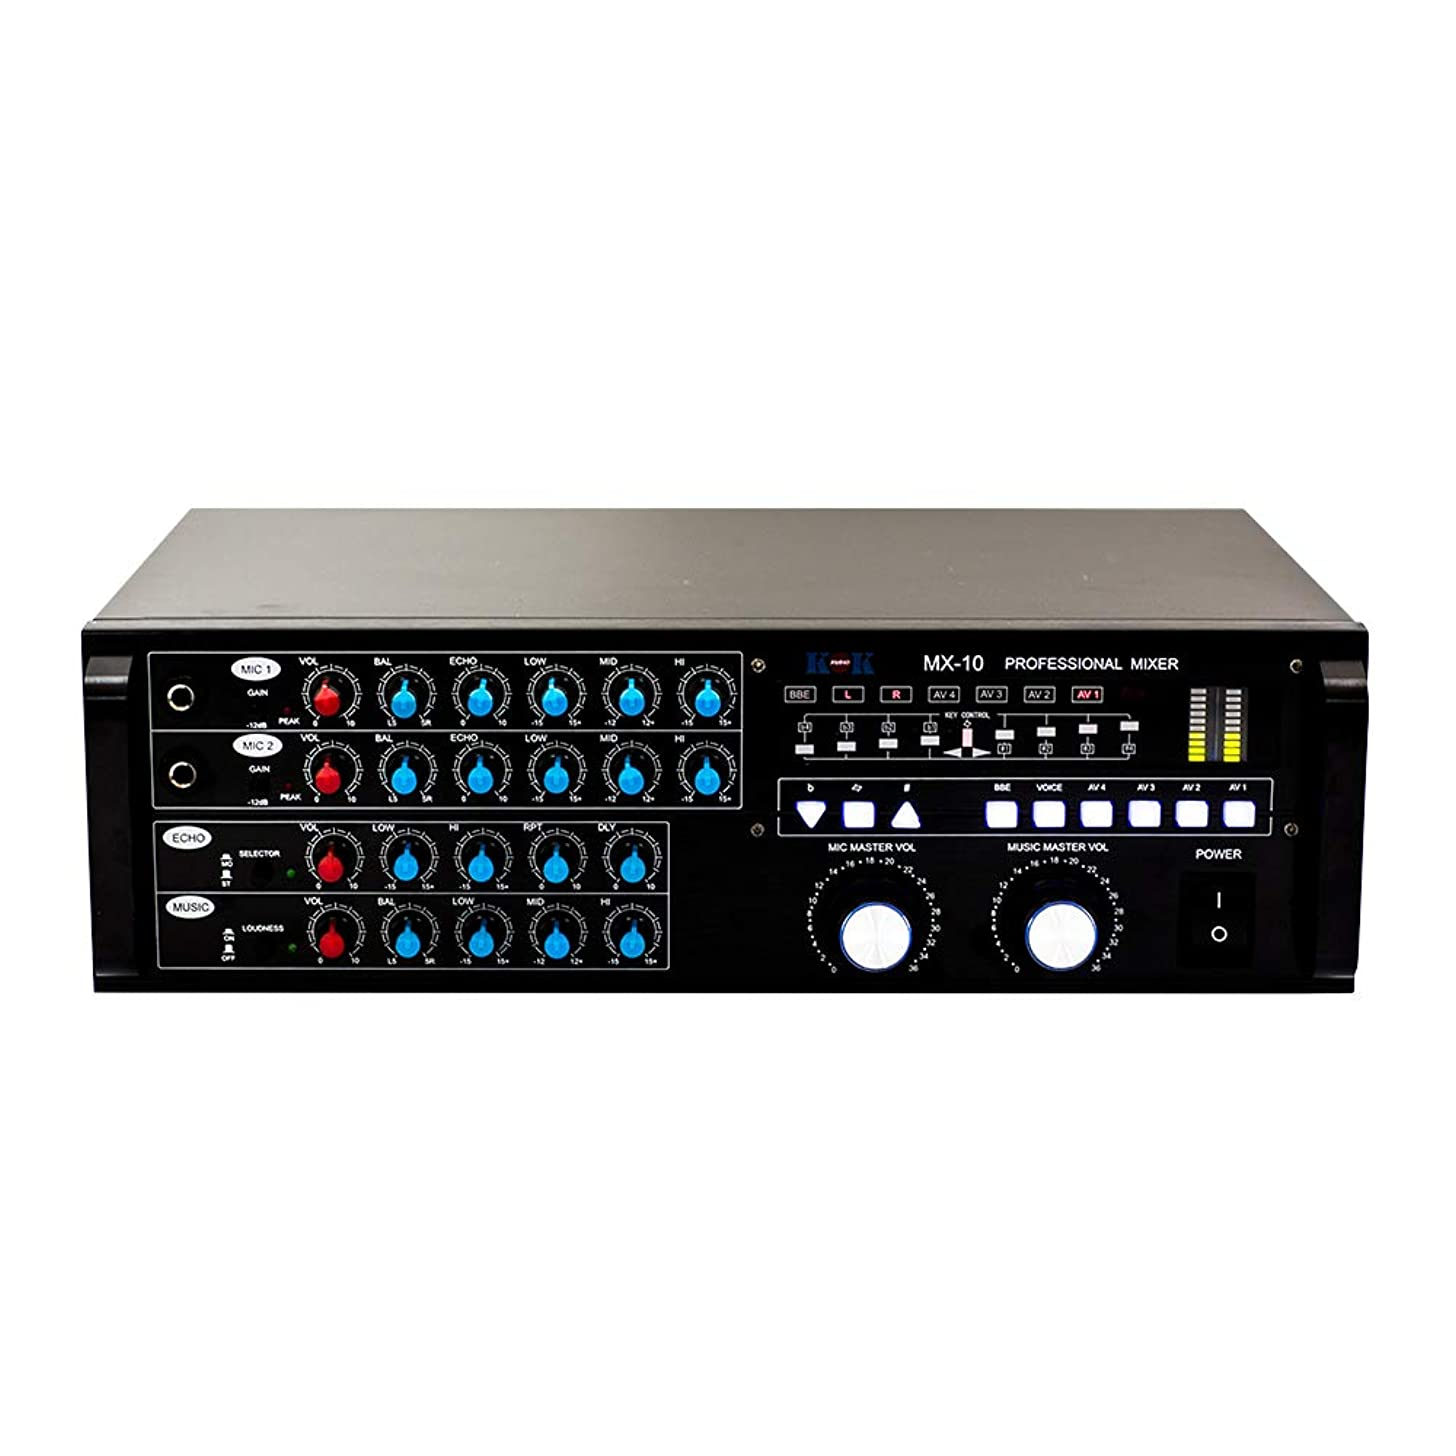 KOK Audio MX-10 PRO AUDIO STEREO SOUND KARAOKE MIXER. 3 Microphone Input with Individual Volume Controls and Echo On/Off Switches